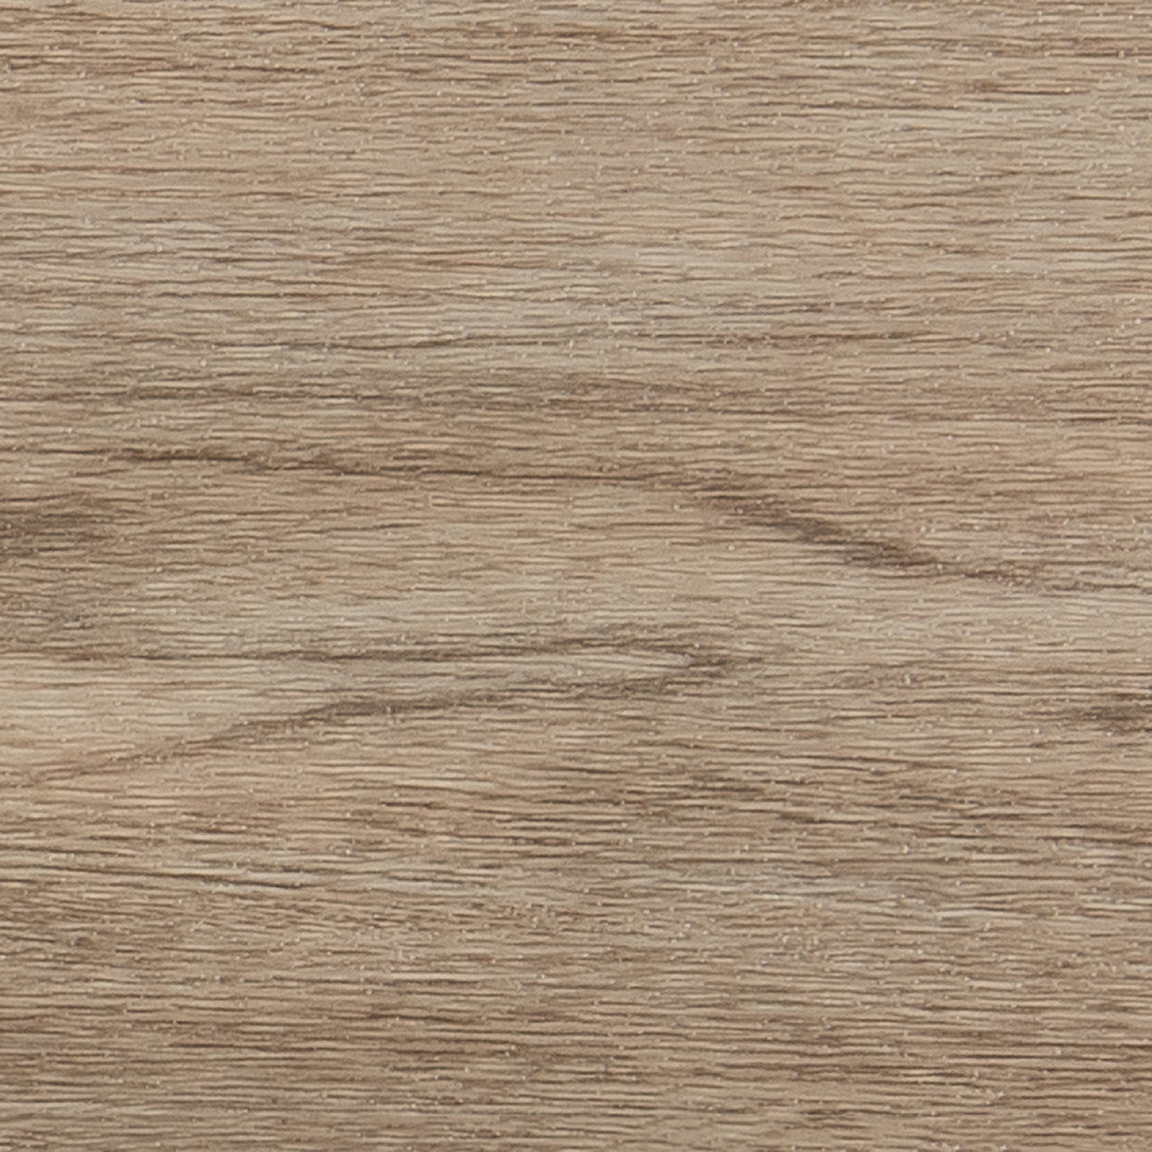 Chandler Oak Tallulah tile